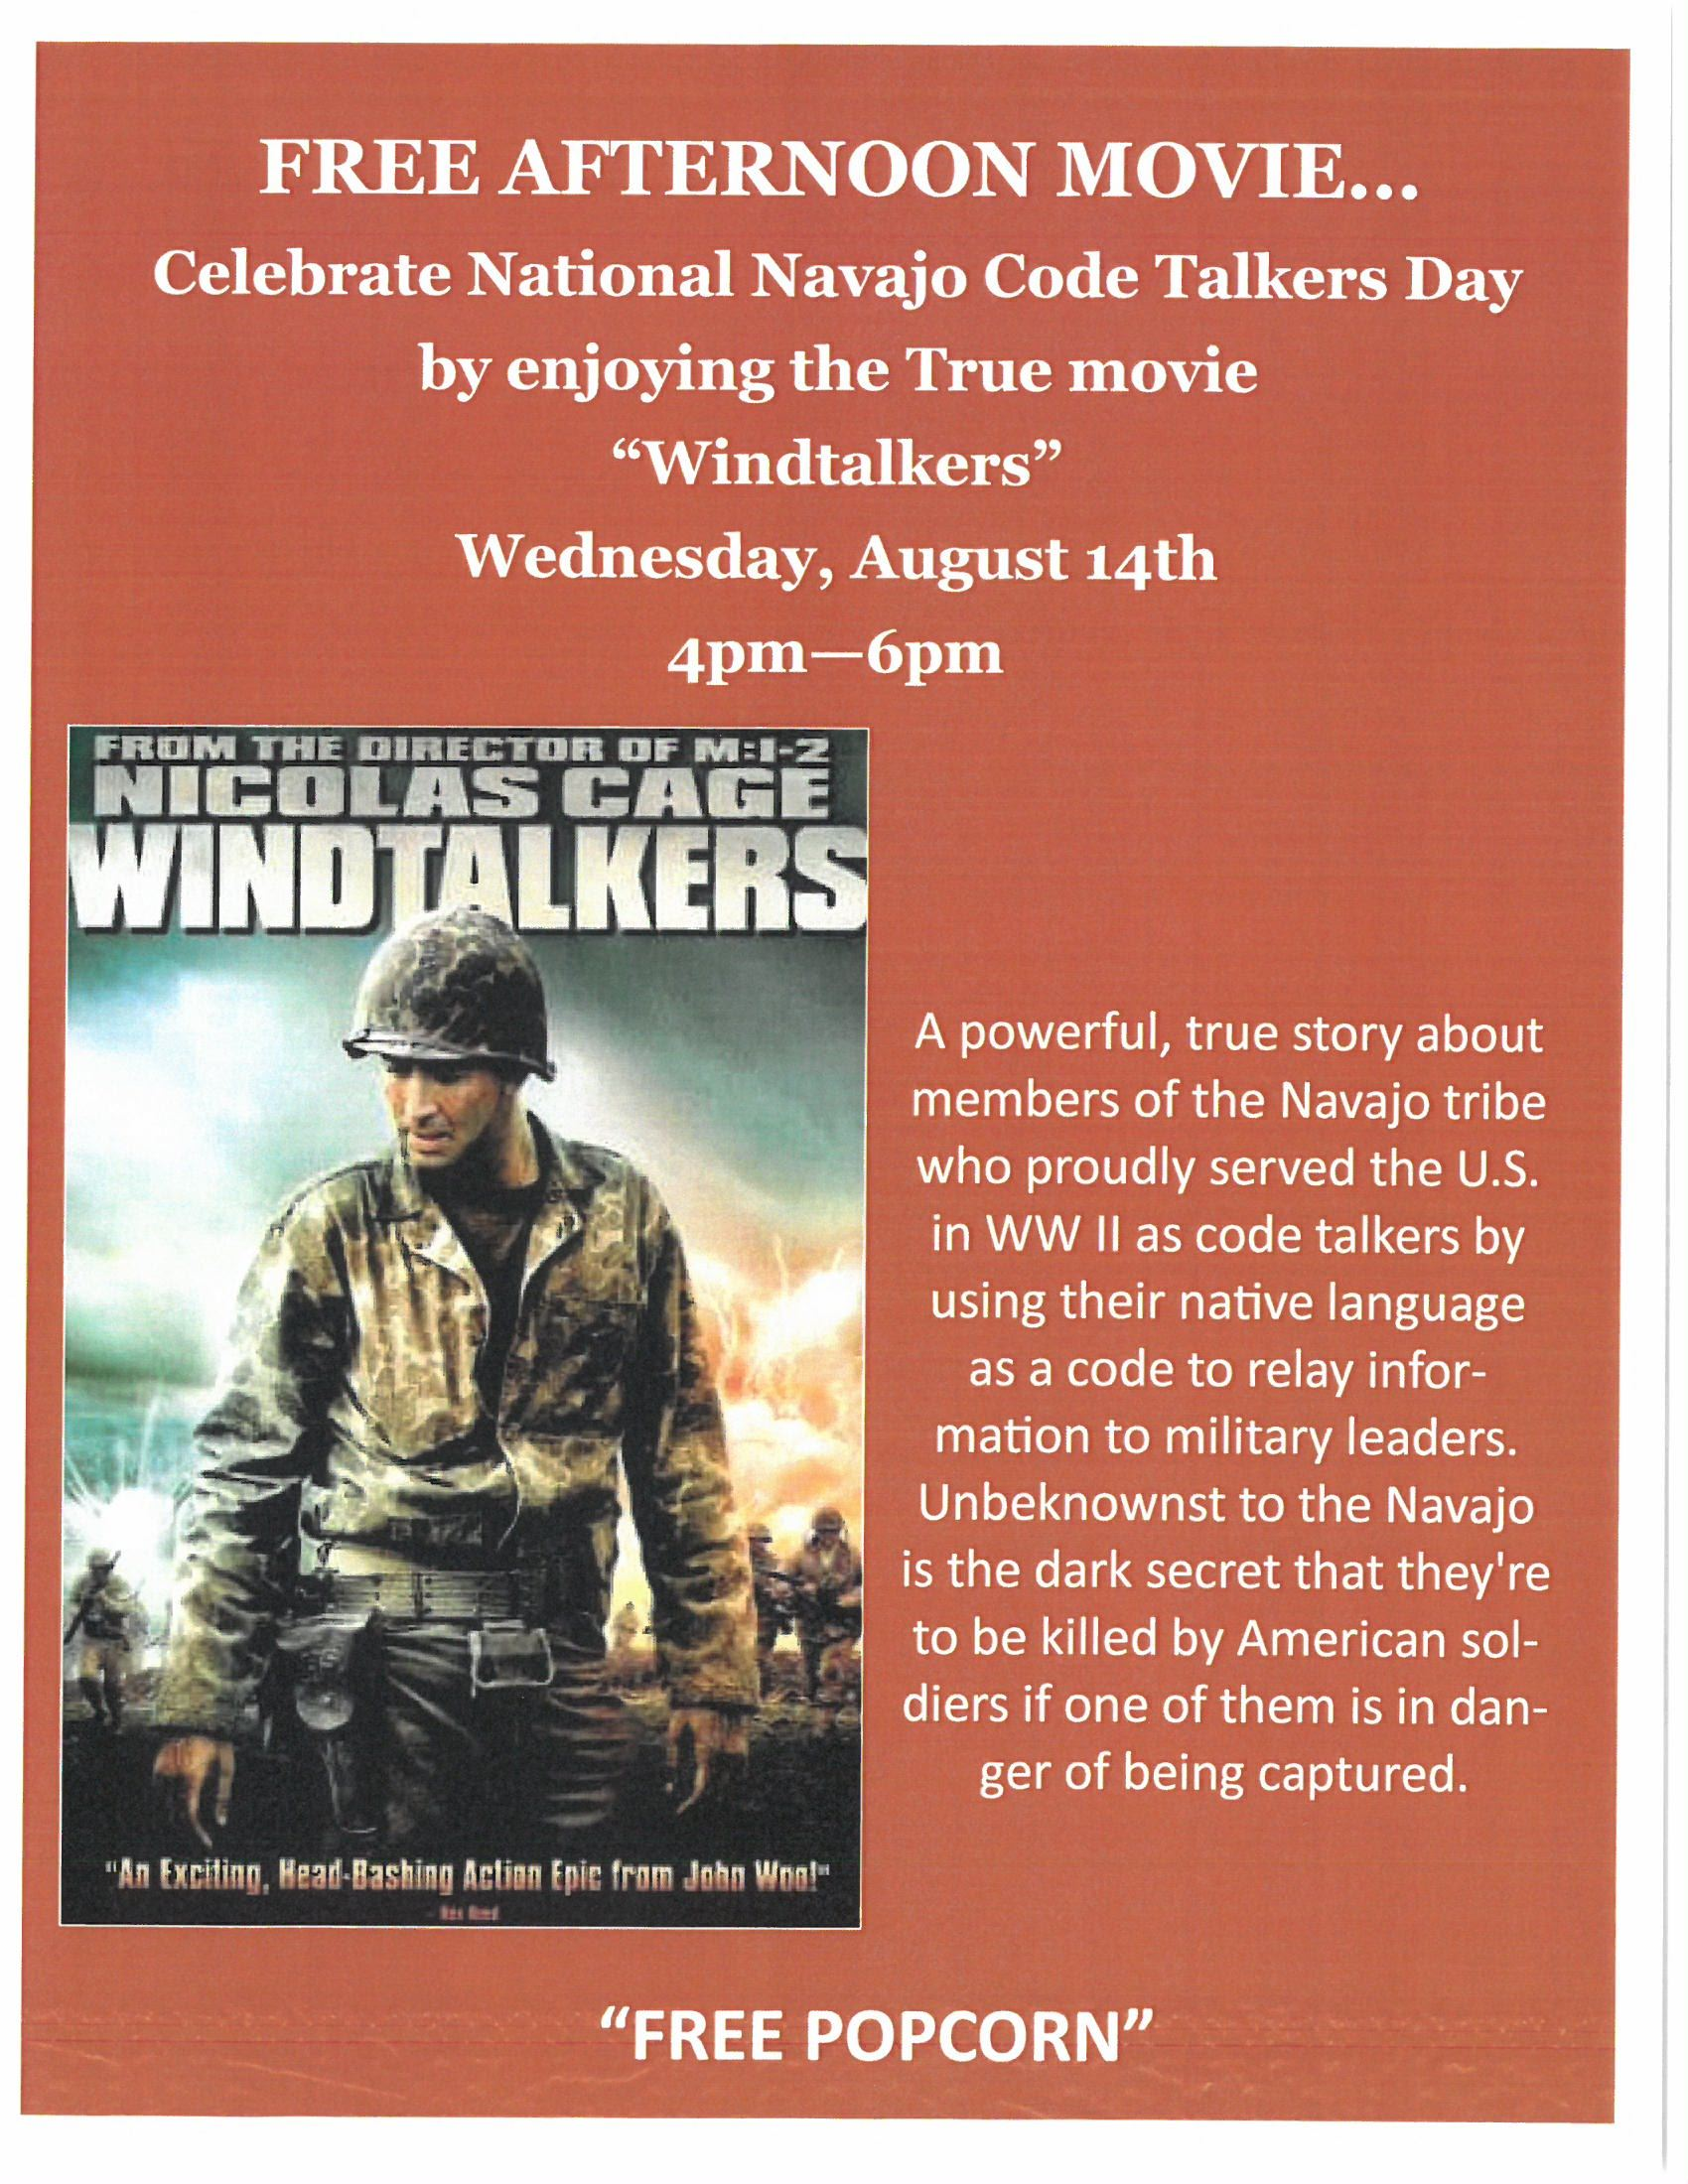 Windtalkers afternoon movie